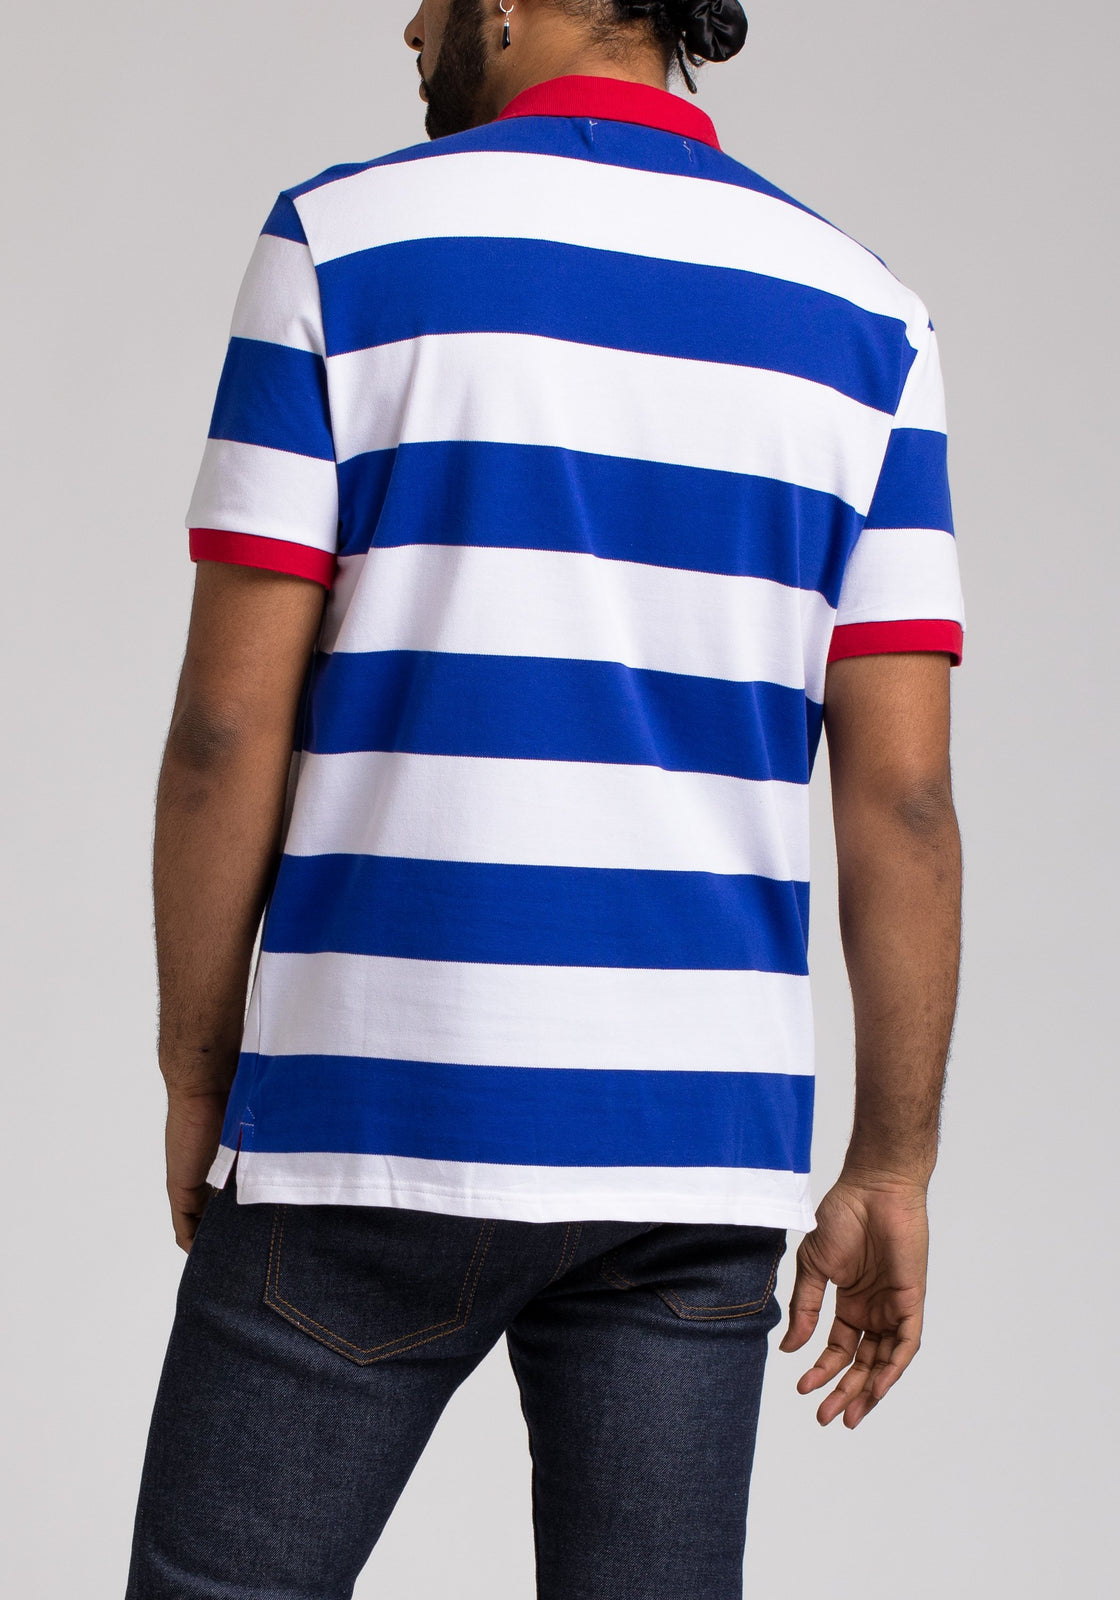 SPACE PATCH STRIPE POLO - Color: Blue